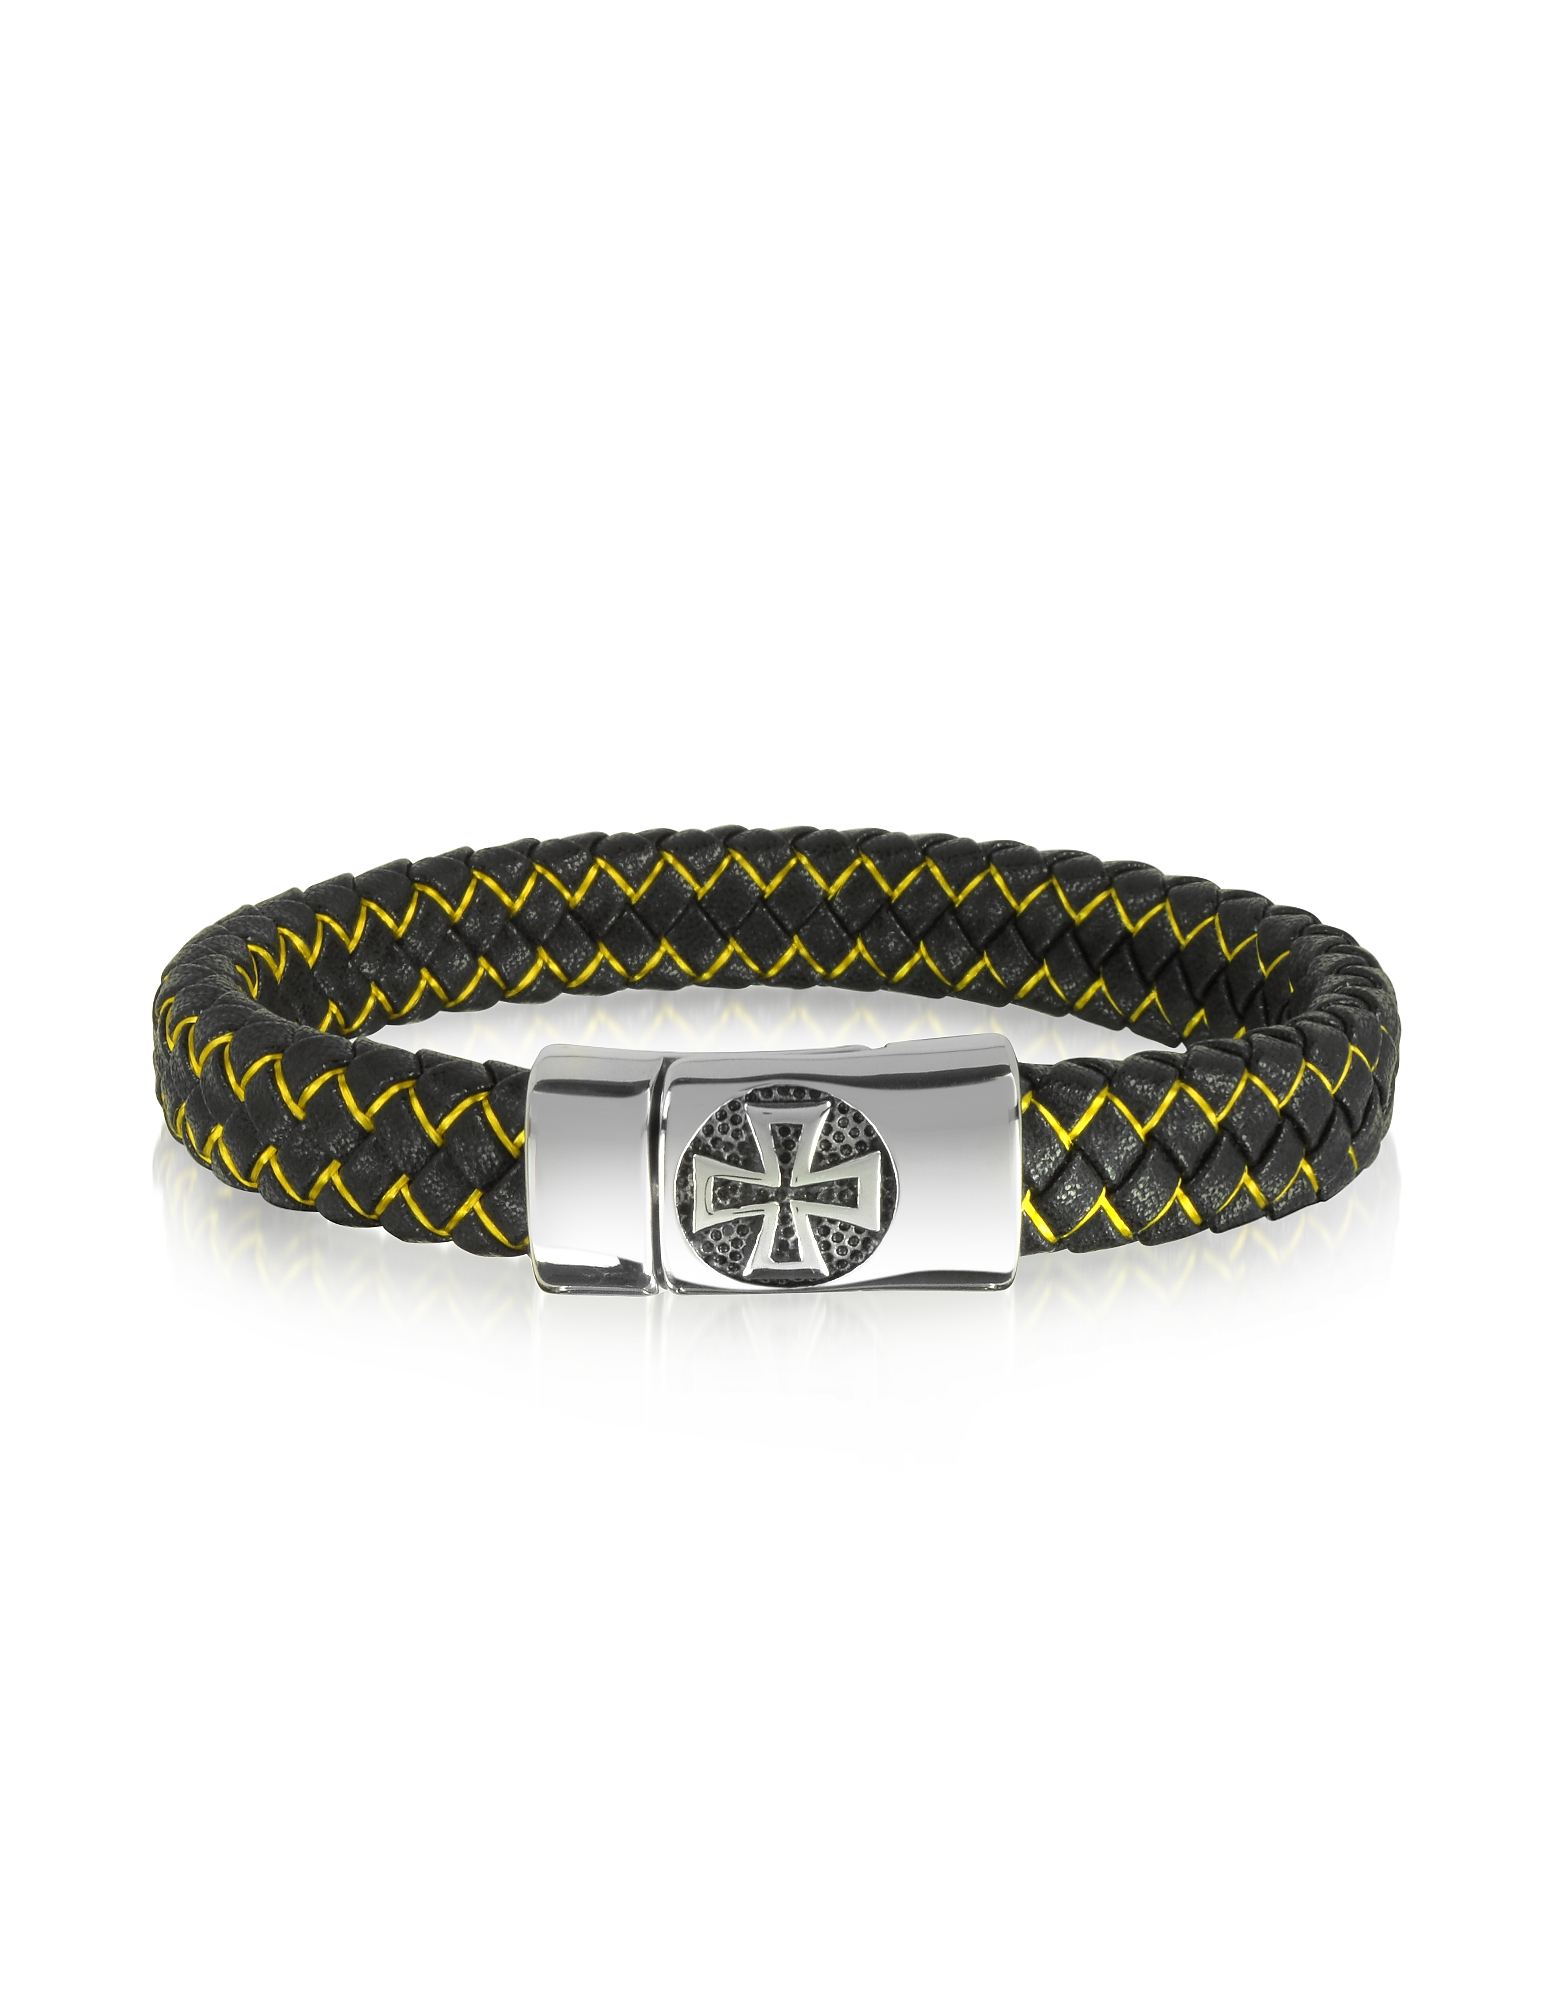 Blackbourne Designer Men's Bracelets, Black Woven Leather and Stainless Steel Celtic Cross Men's Bracelet